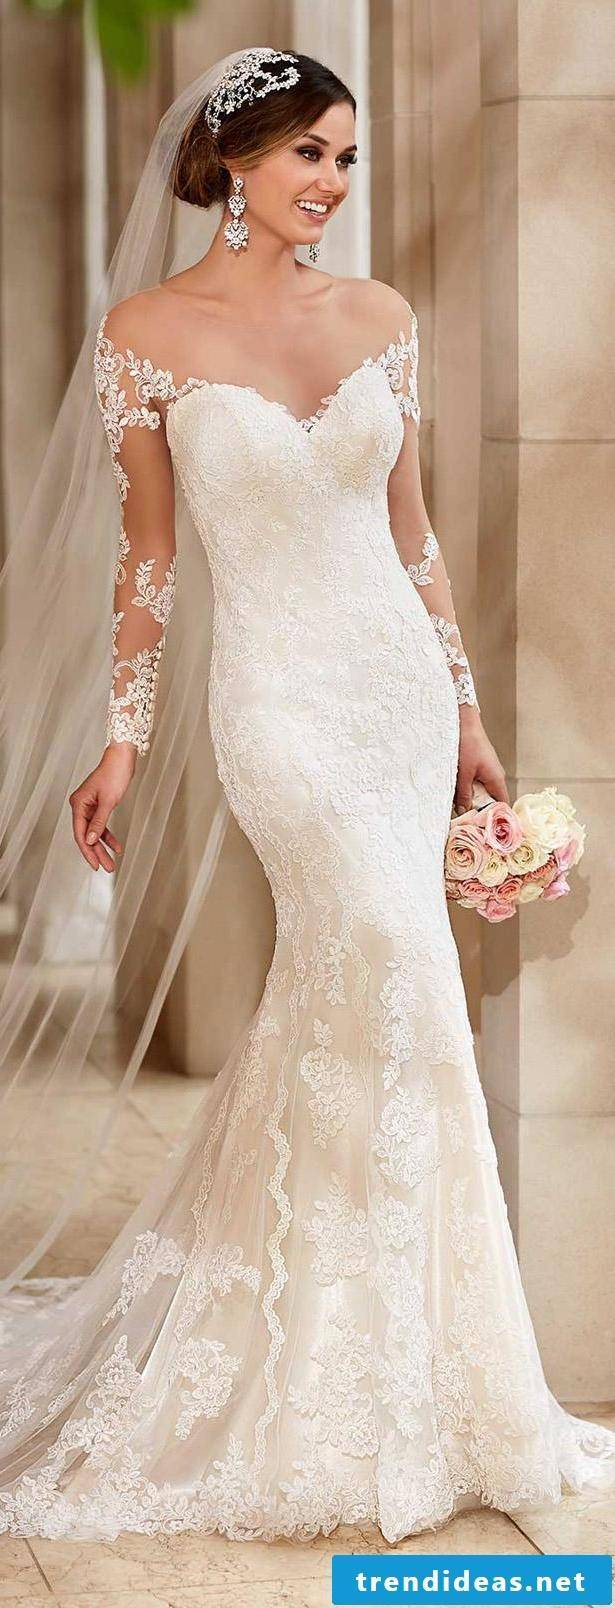 Mermaid wedding dress - with our tips you will find the dress for your figure